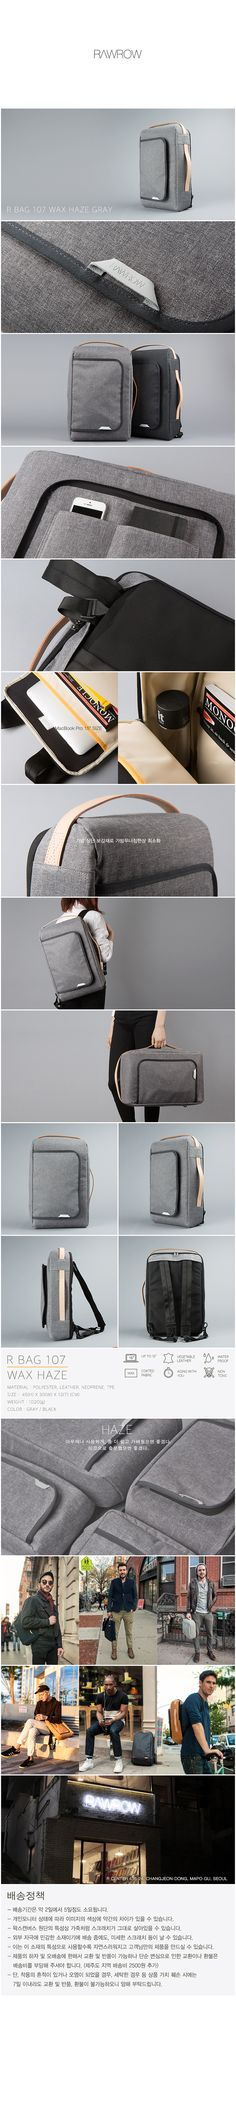 RAWROW - R BAG 107 Wax Gray http://ebagsbackpack.tumblr.com/